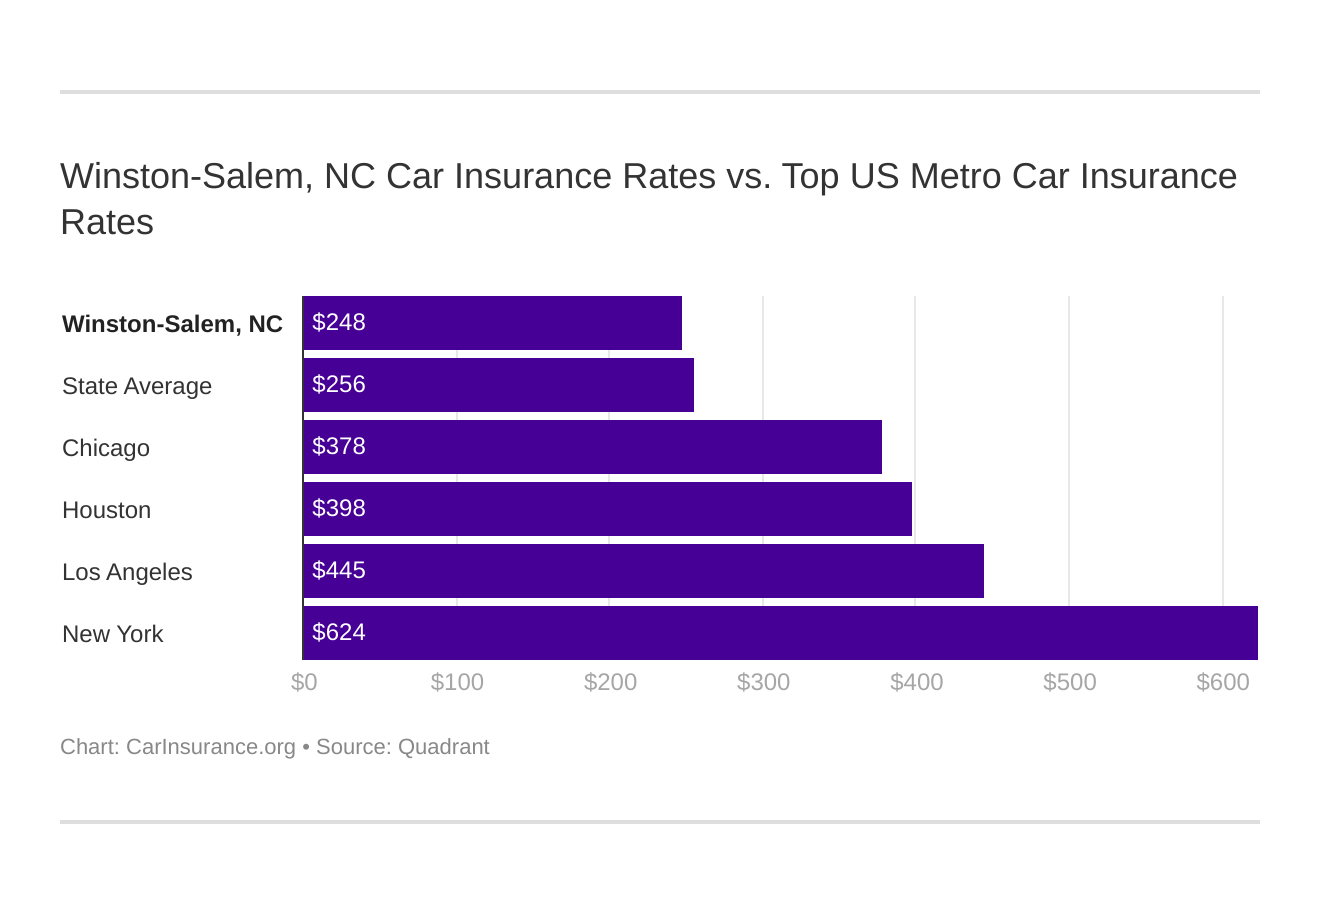 Winston-Salem, NC Car Insurance Rates vs. Top US Metro Car Insurance Rates